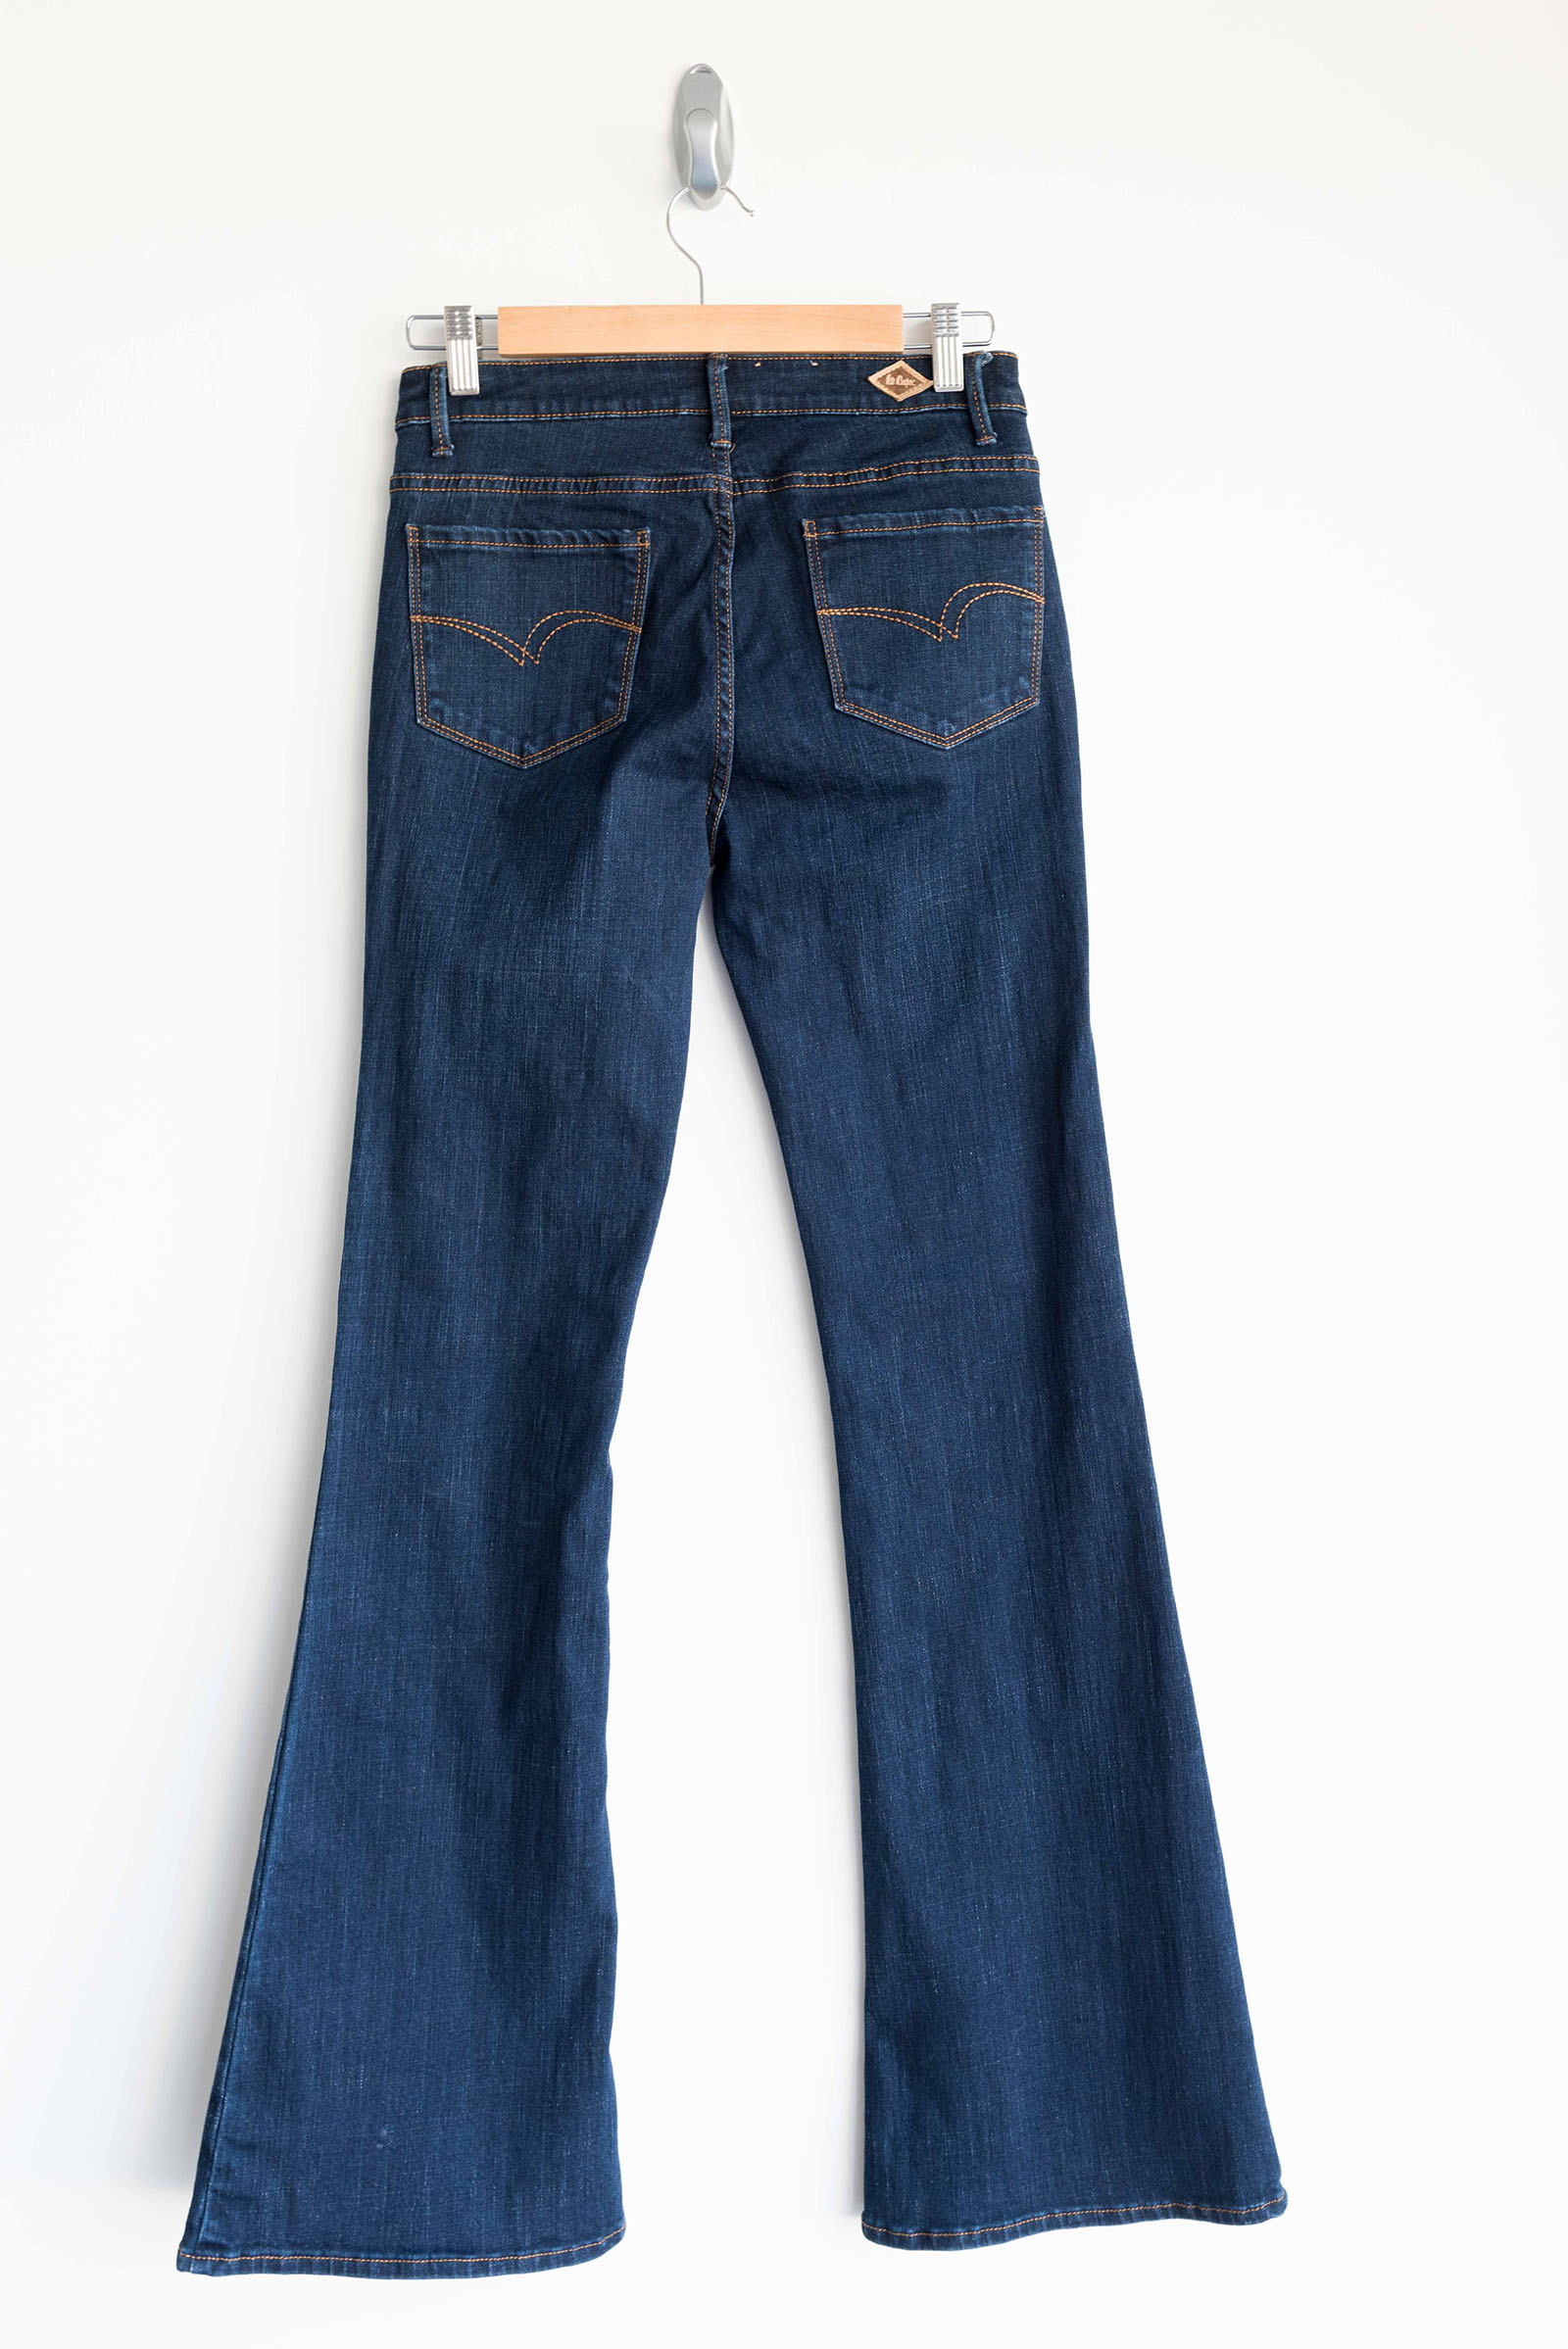 lee cooper jeans for women - photo #37